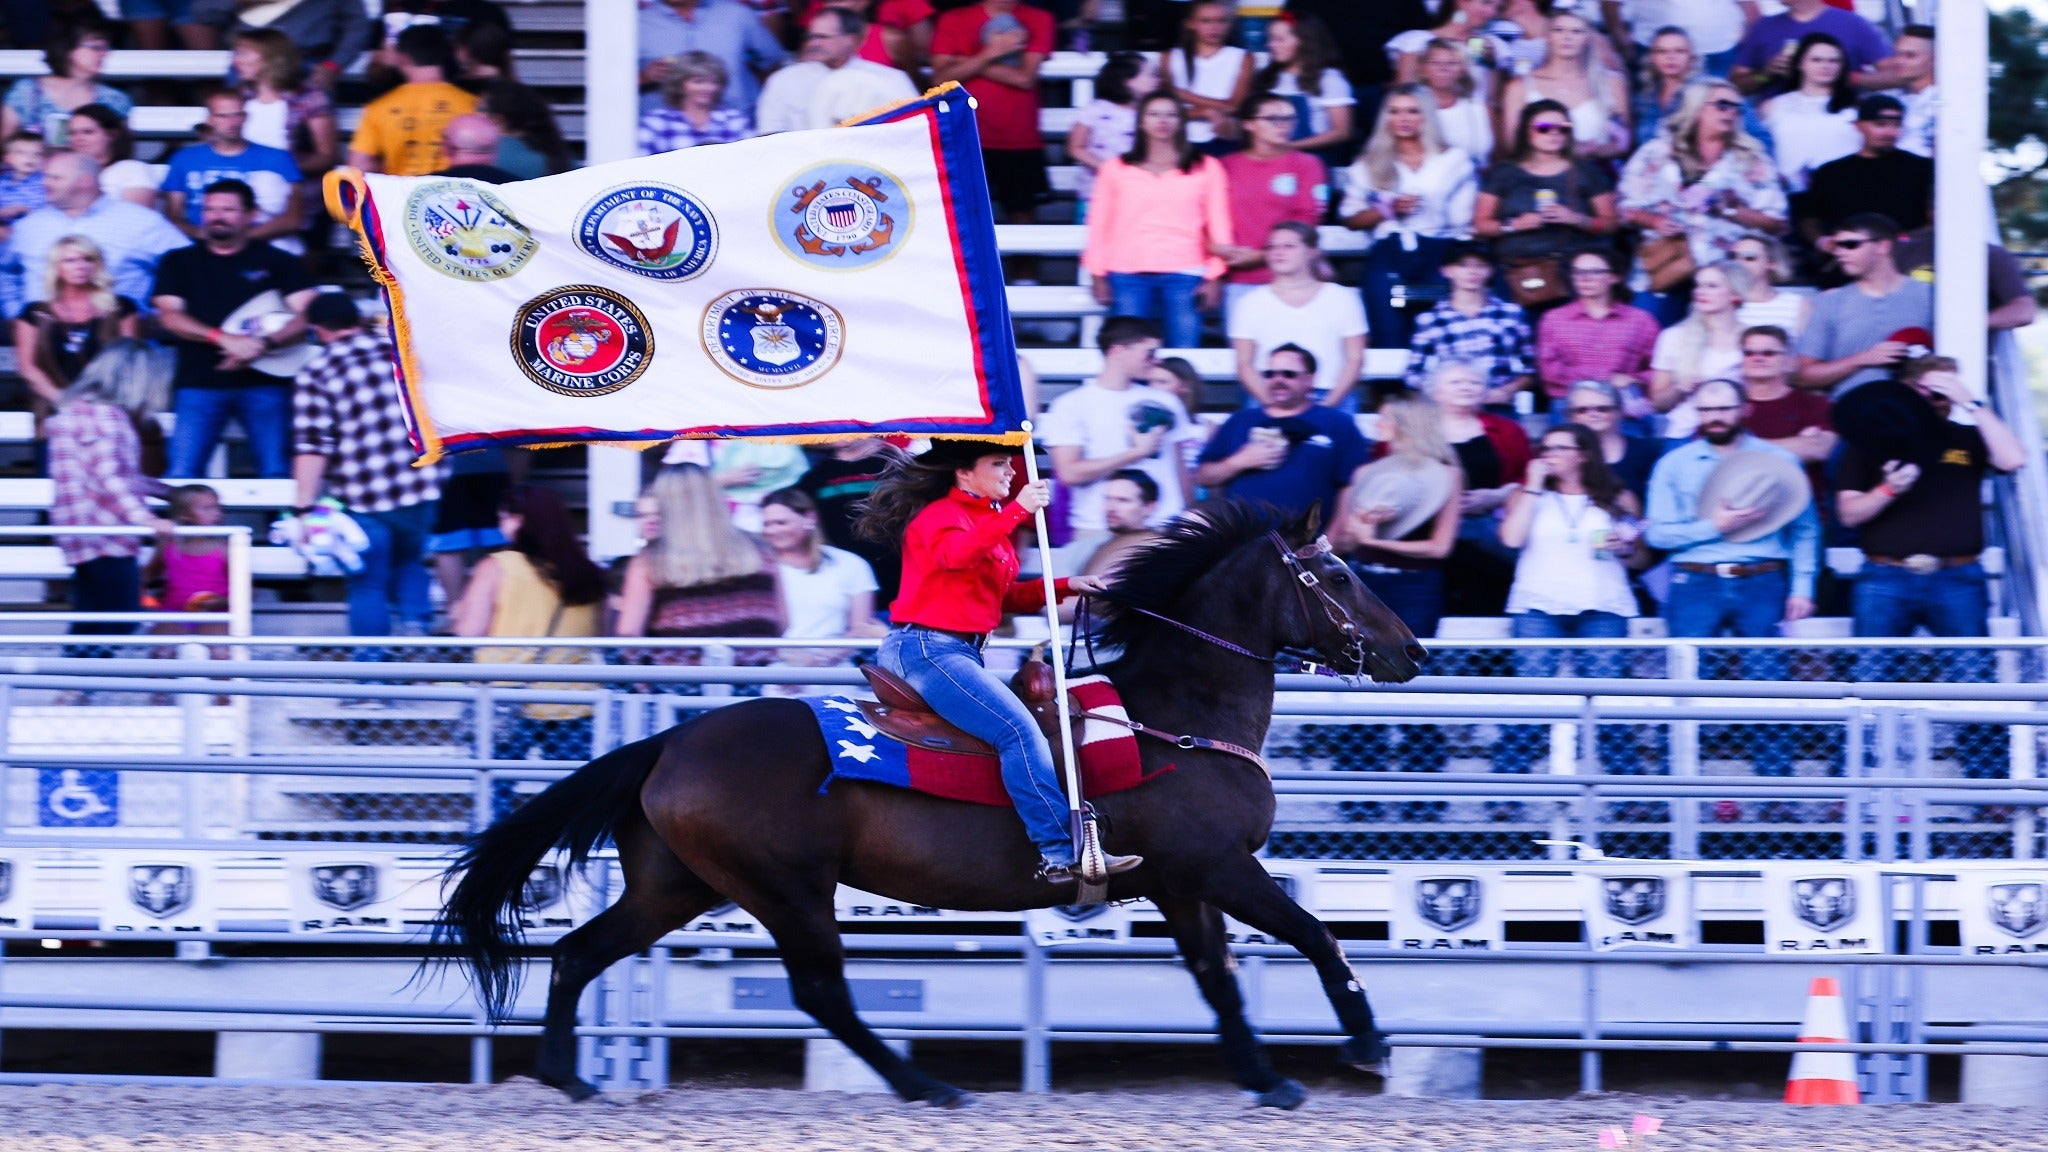 PRCA Rodeo -Patriot Night at Douglas County Fairgrounds